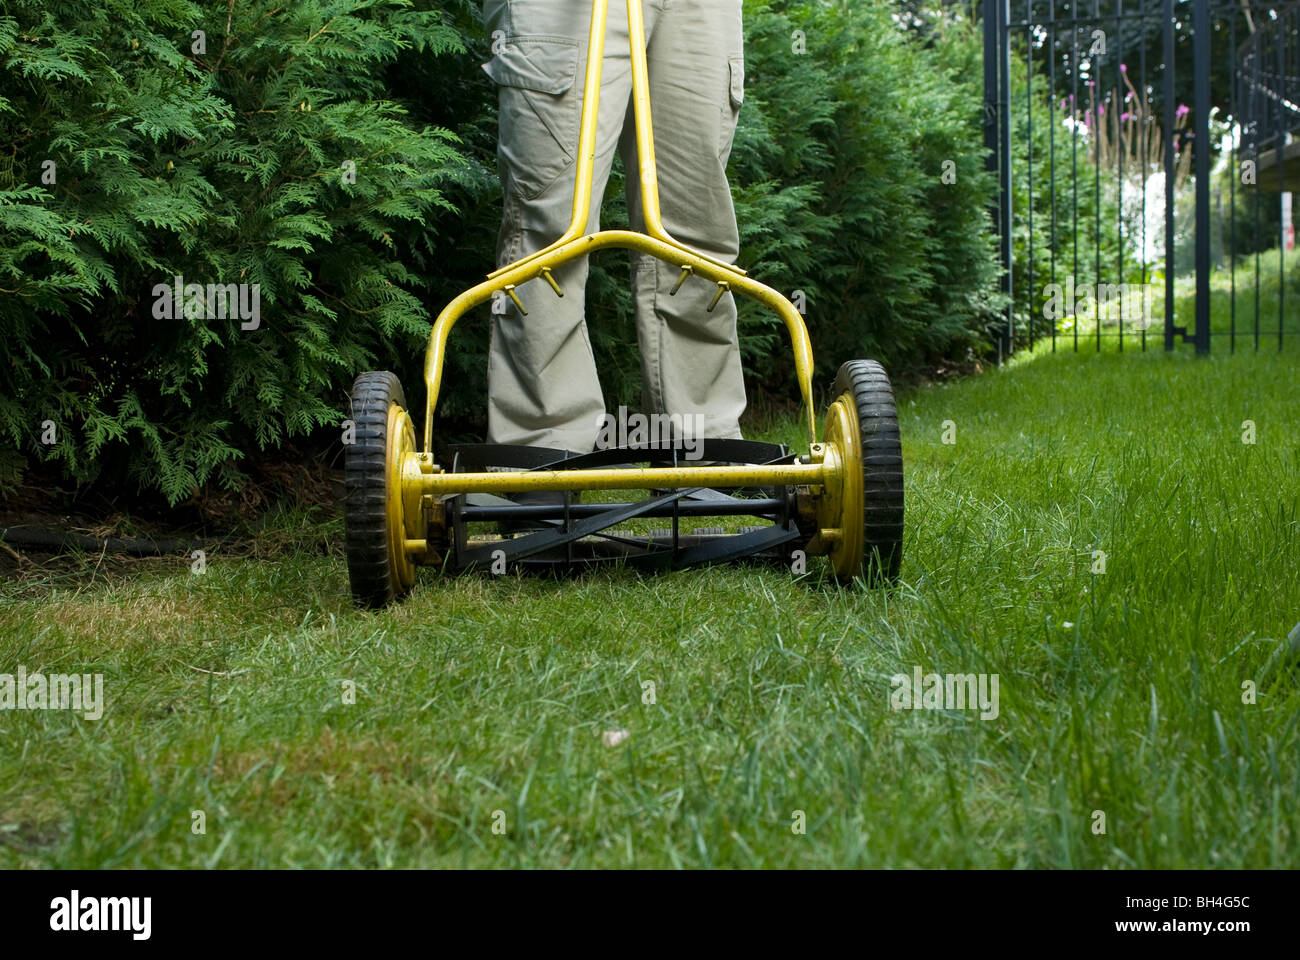 Man mowing lawn with push mower, Montreal, Quebec - Stock Image